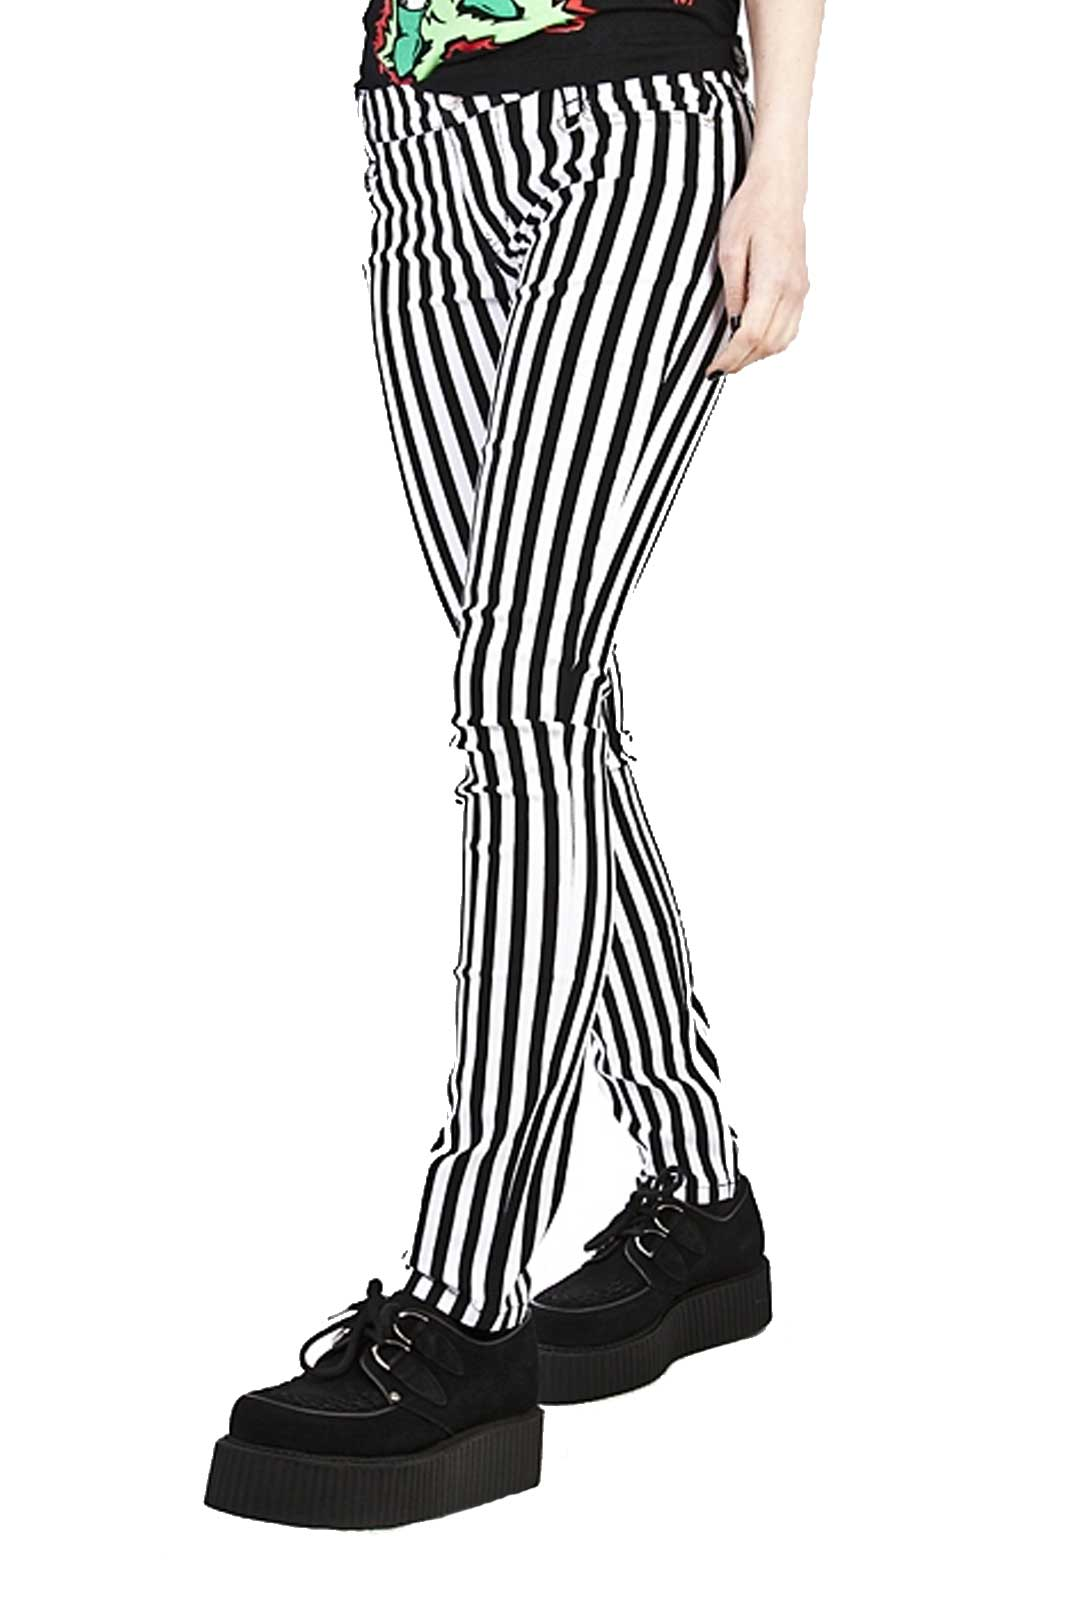 banned apparel clothing stripe skinny jeans black white